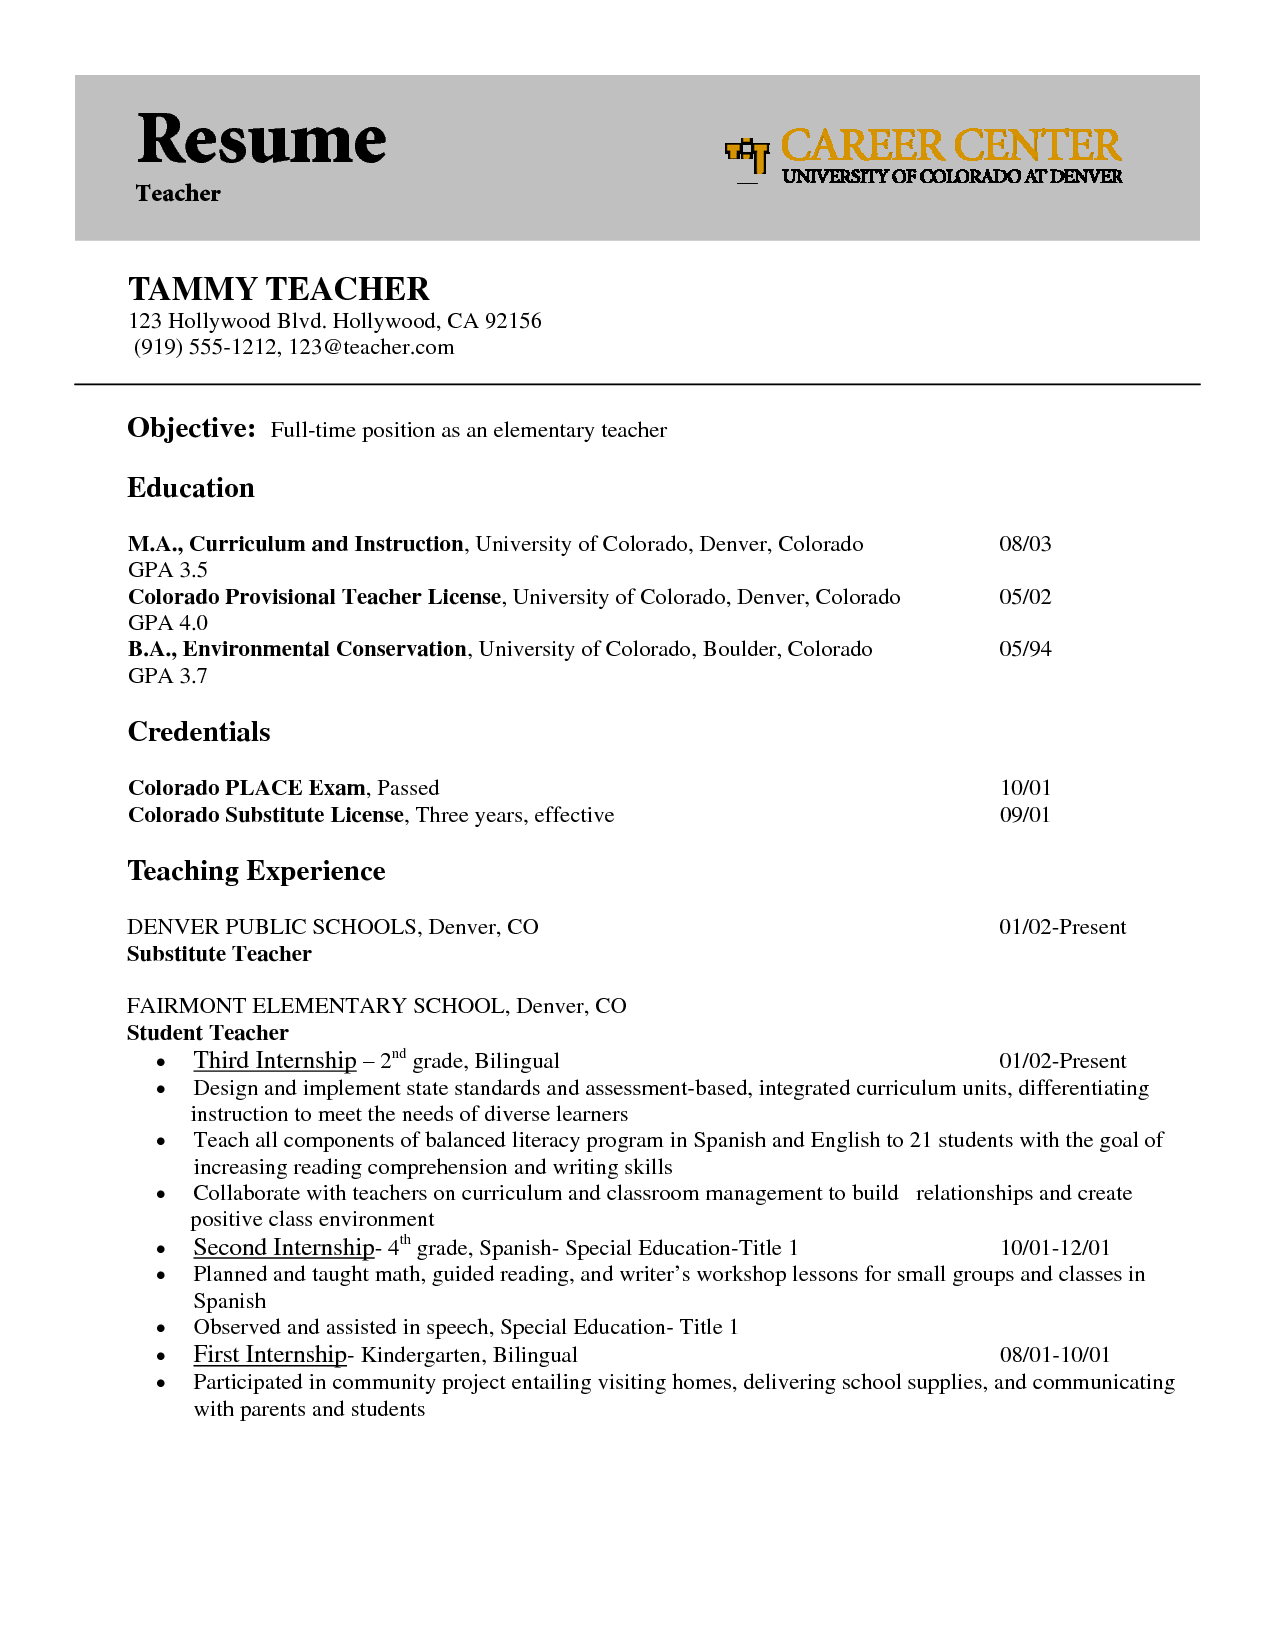 Teacher Resume Examples Delectable Teacher Cover Letters With Experiencejob Hunting Write A Great Design Ideas